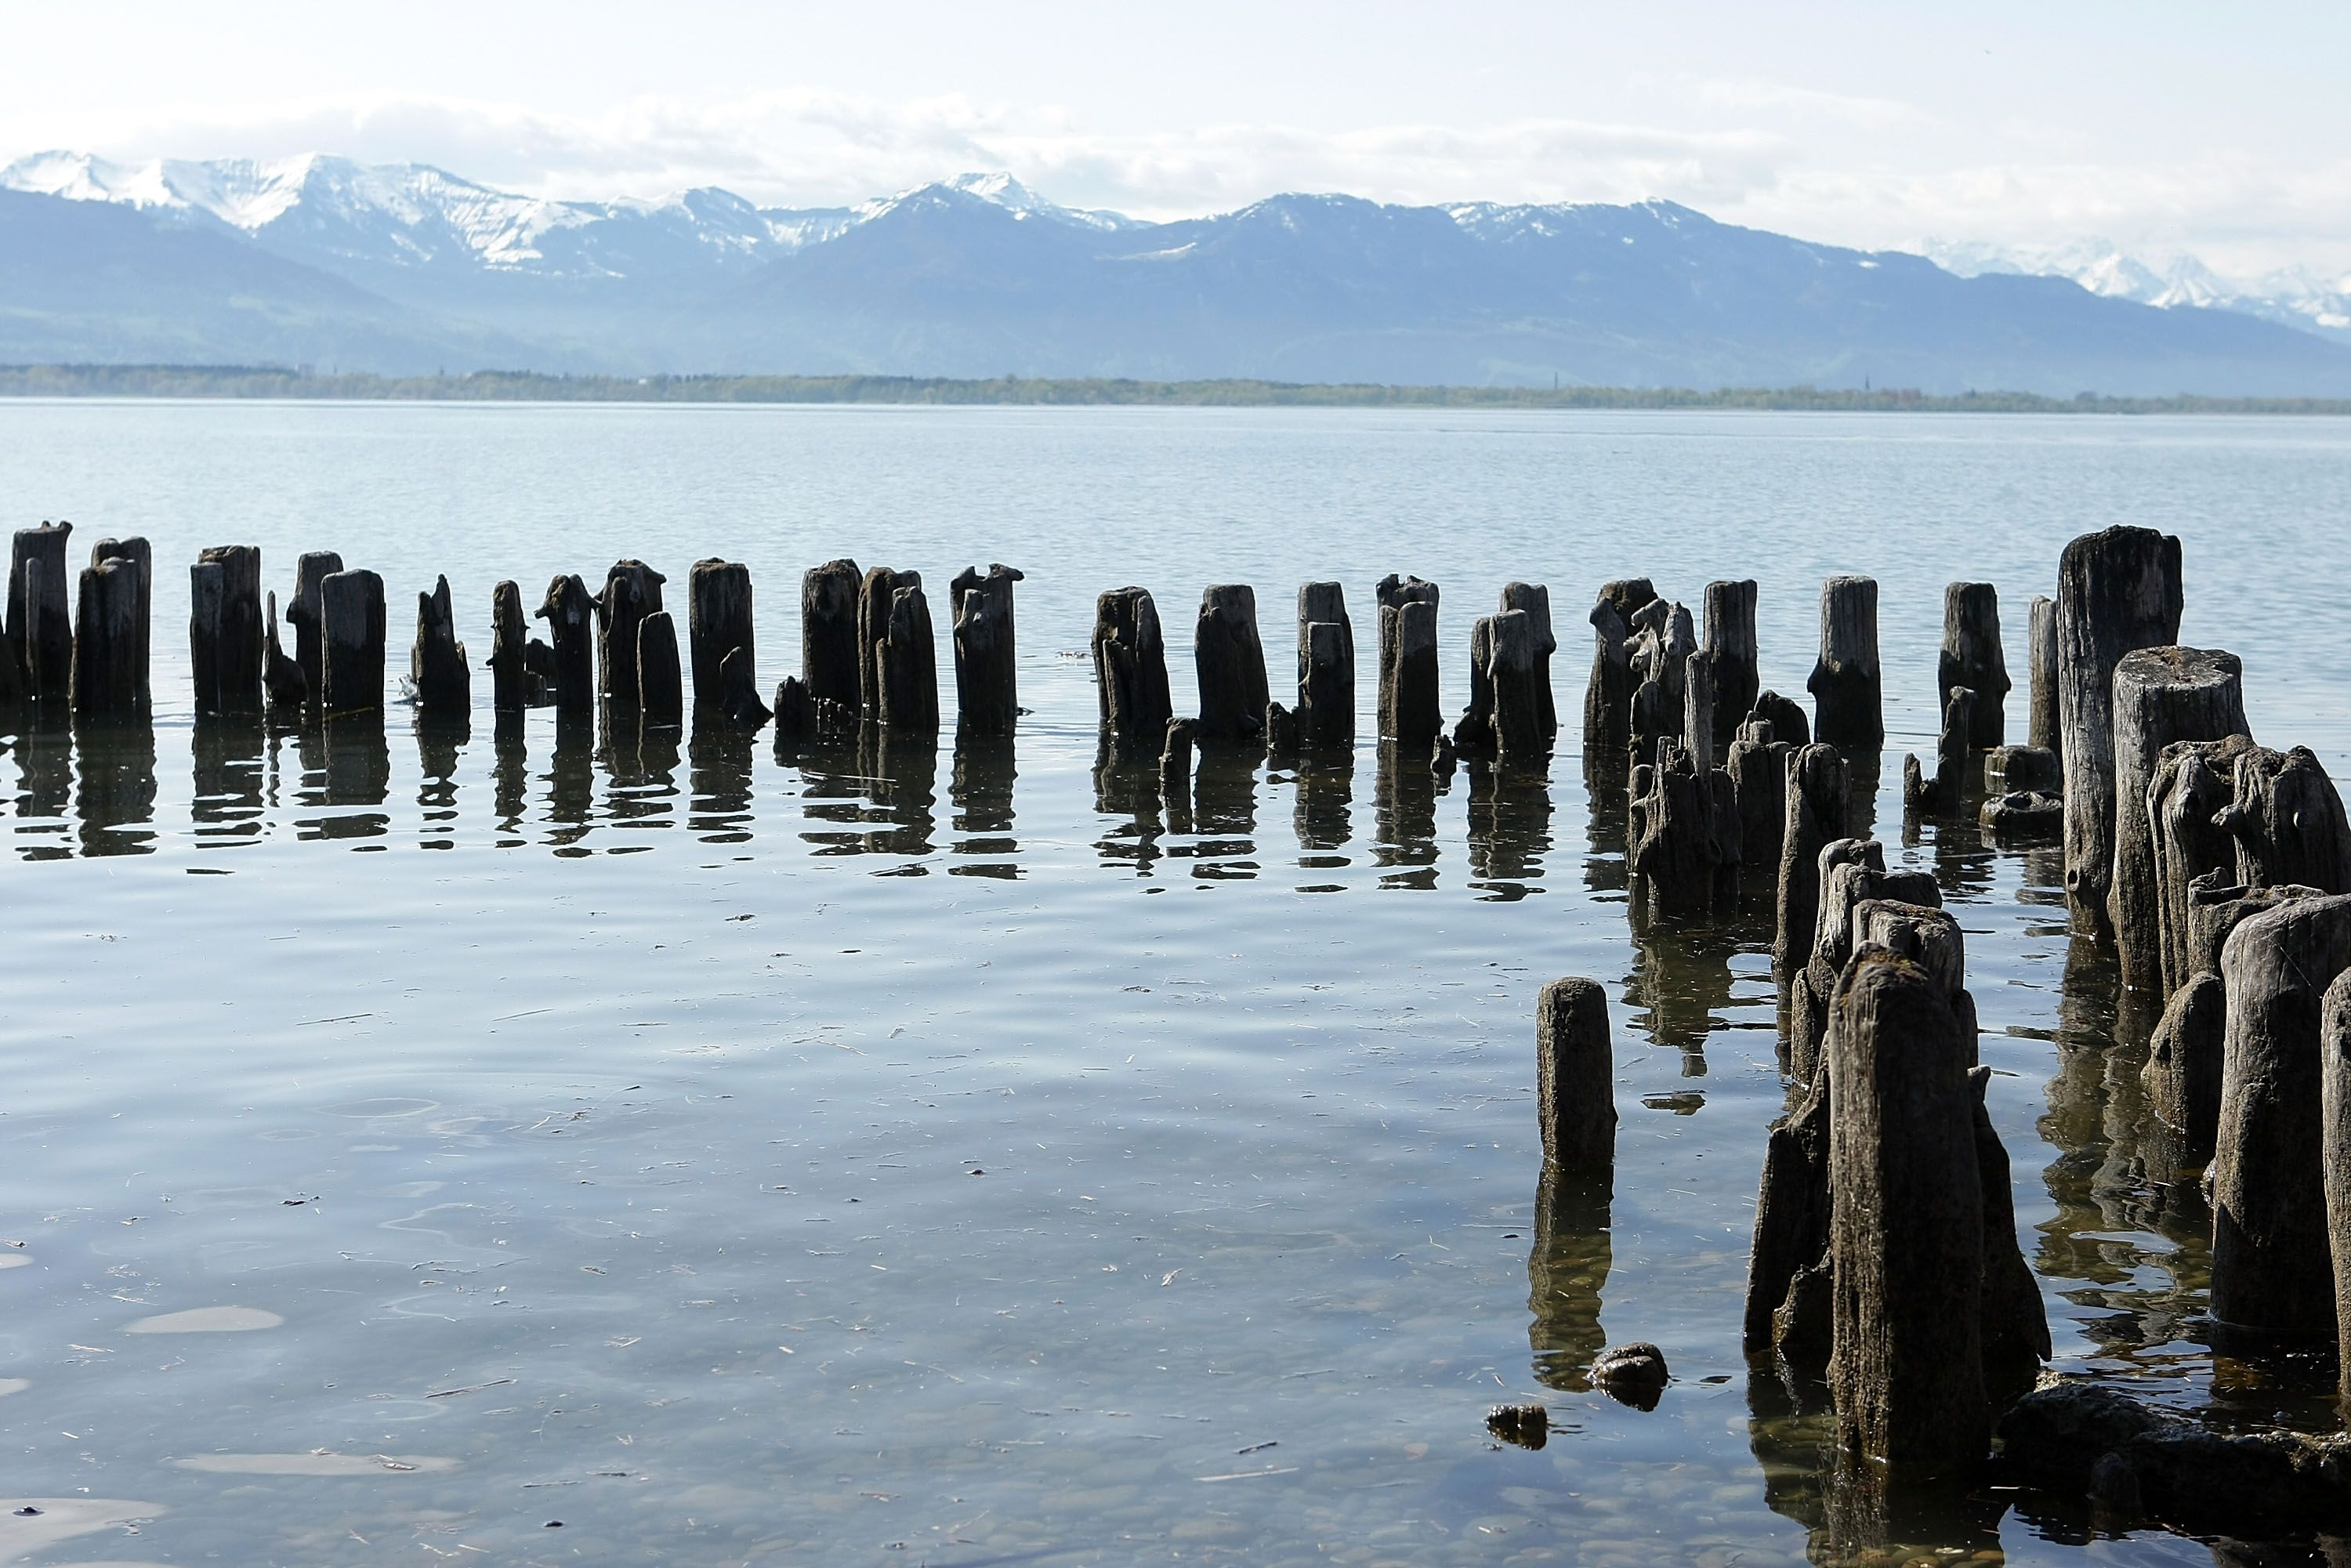 Old Piers in Bodensee (Lake Constance) and the Alps